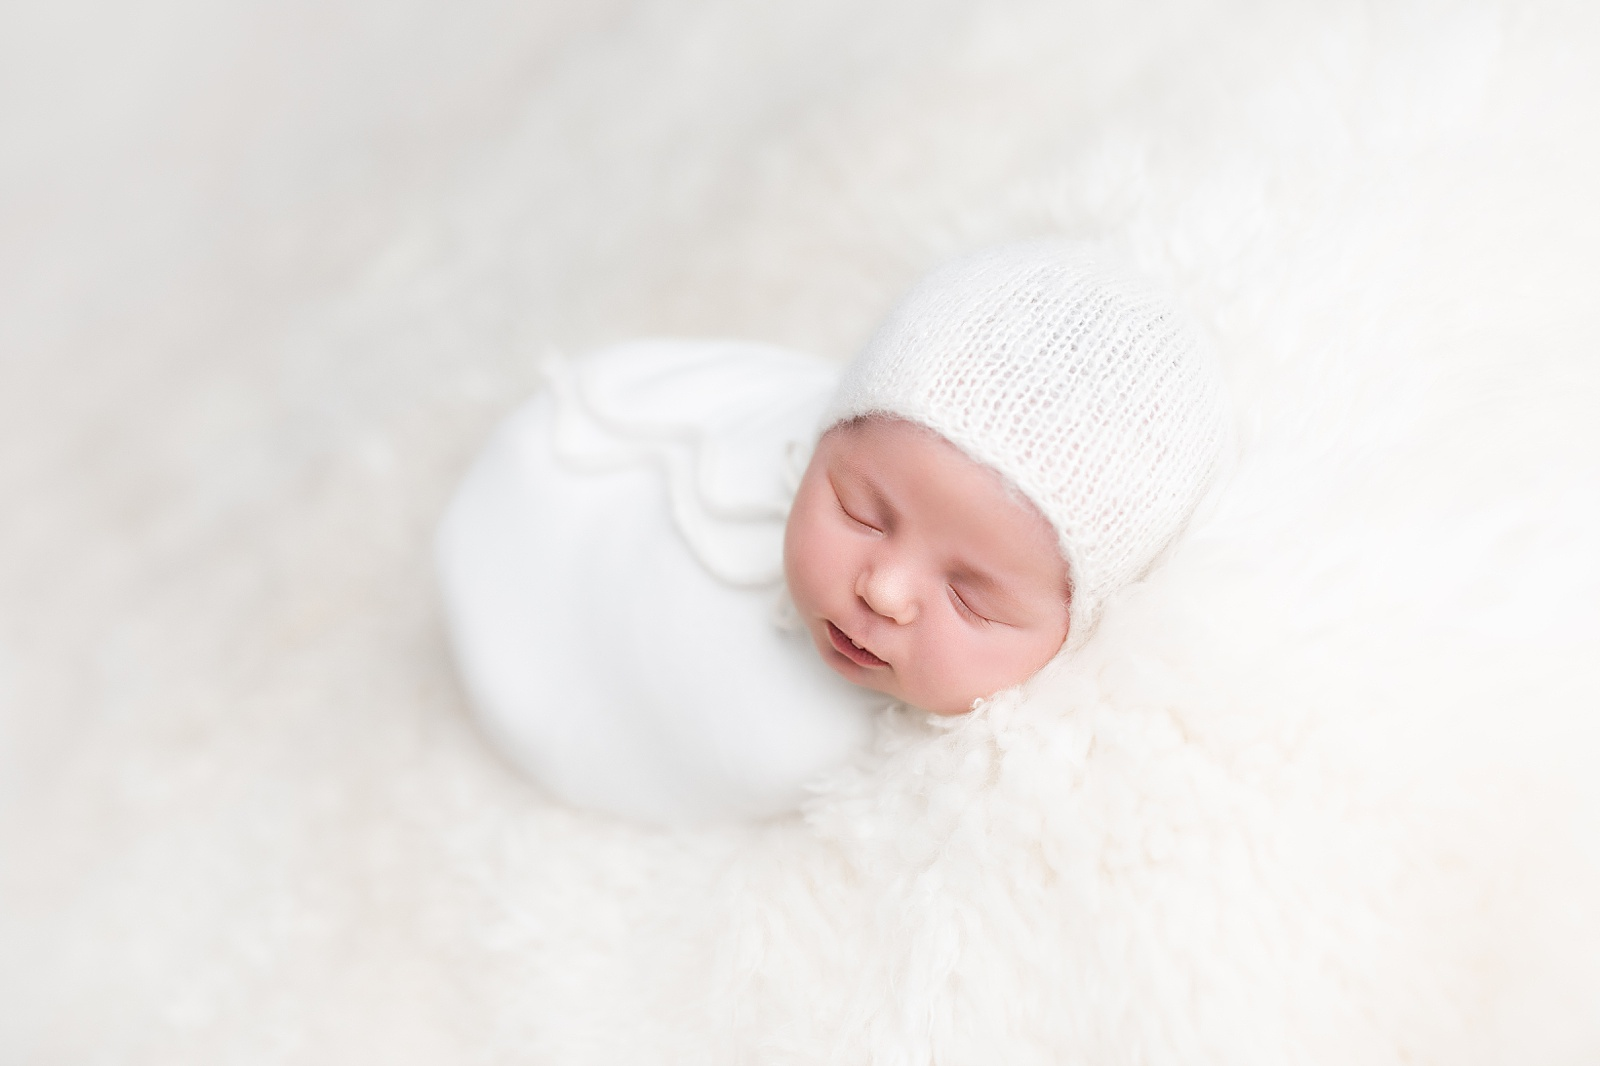 A swaddled newborn in a back-lying pose.